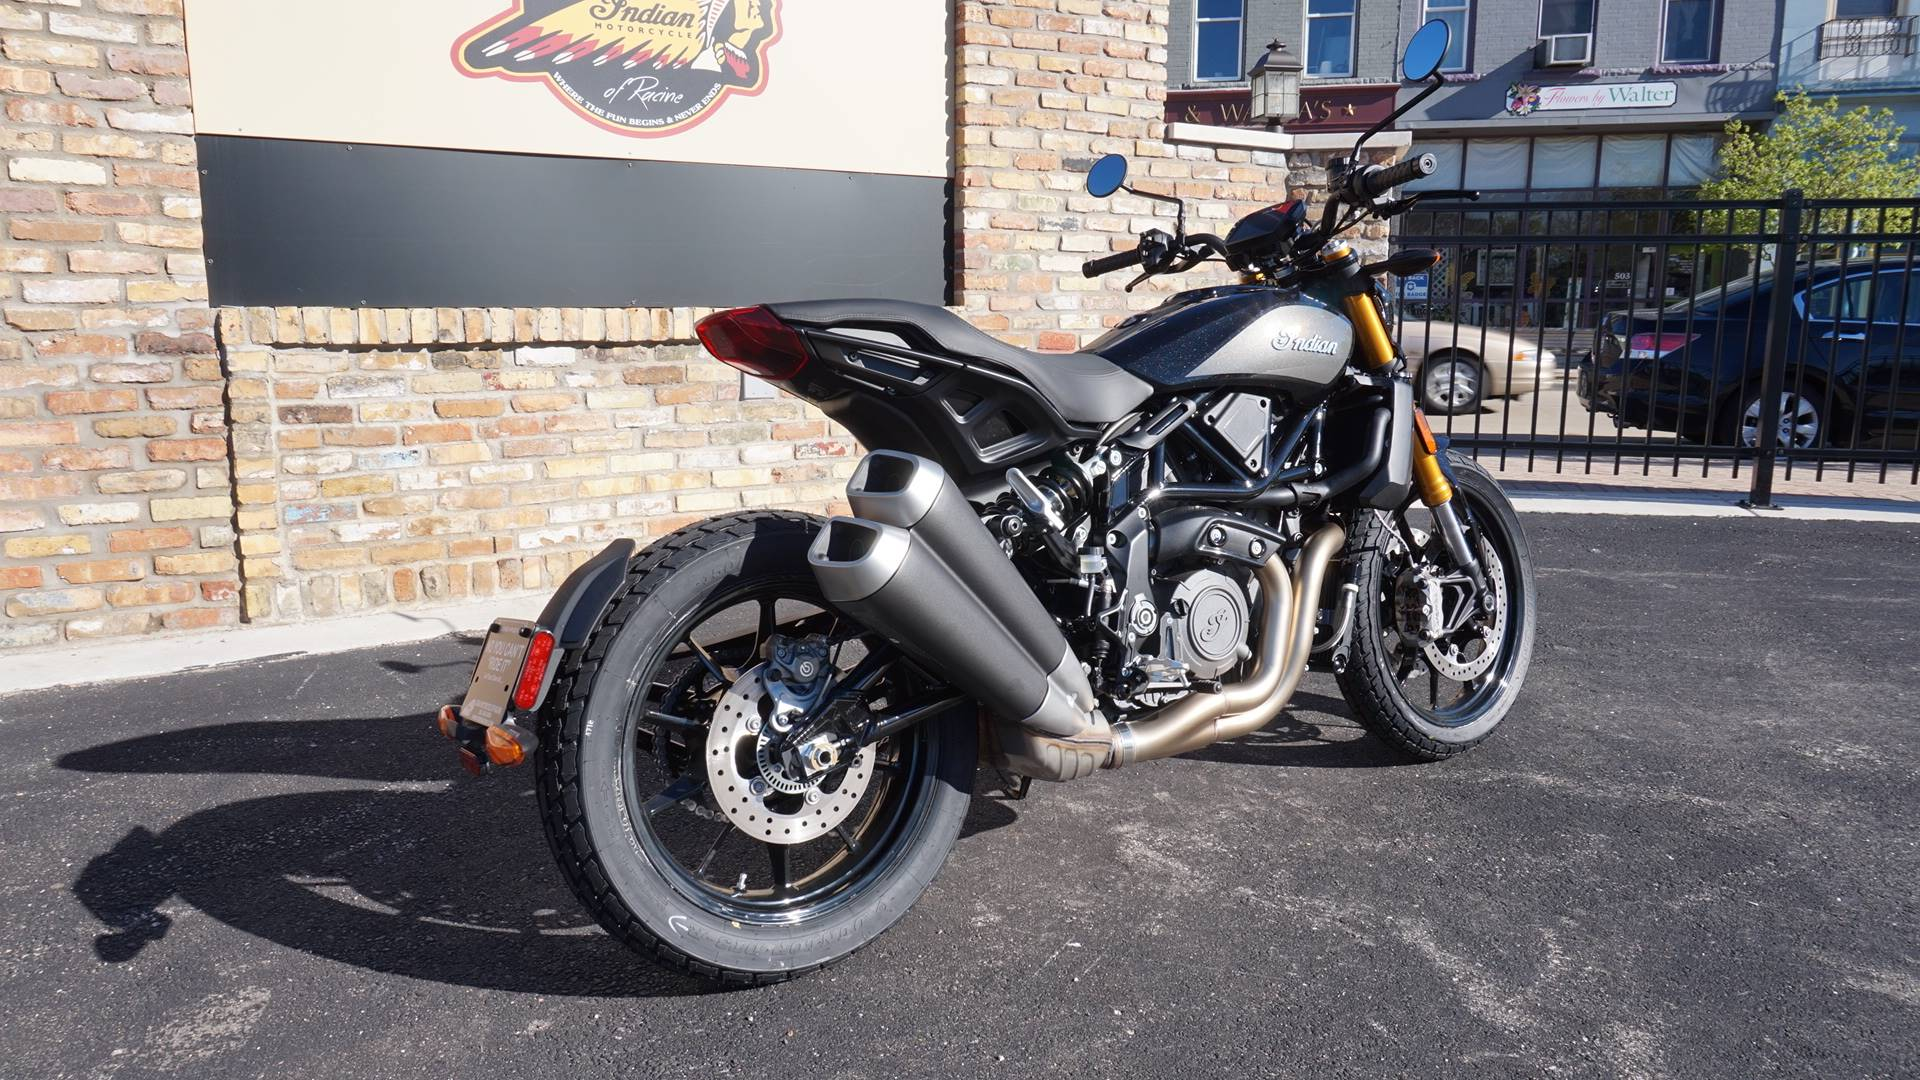 2019 Indian FTR™ 1200 S in Racine, Wisconsin - Photo 8